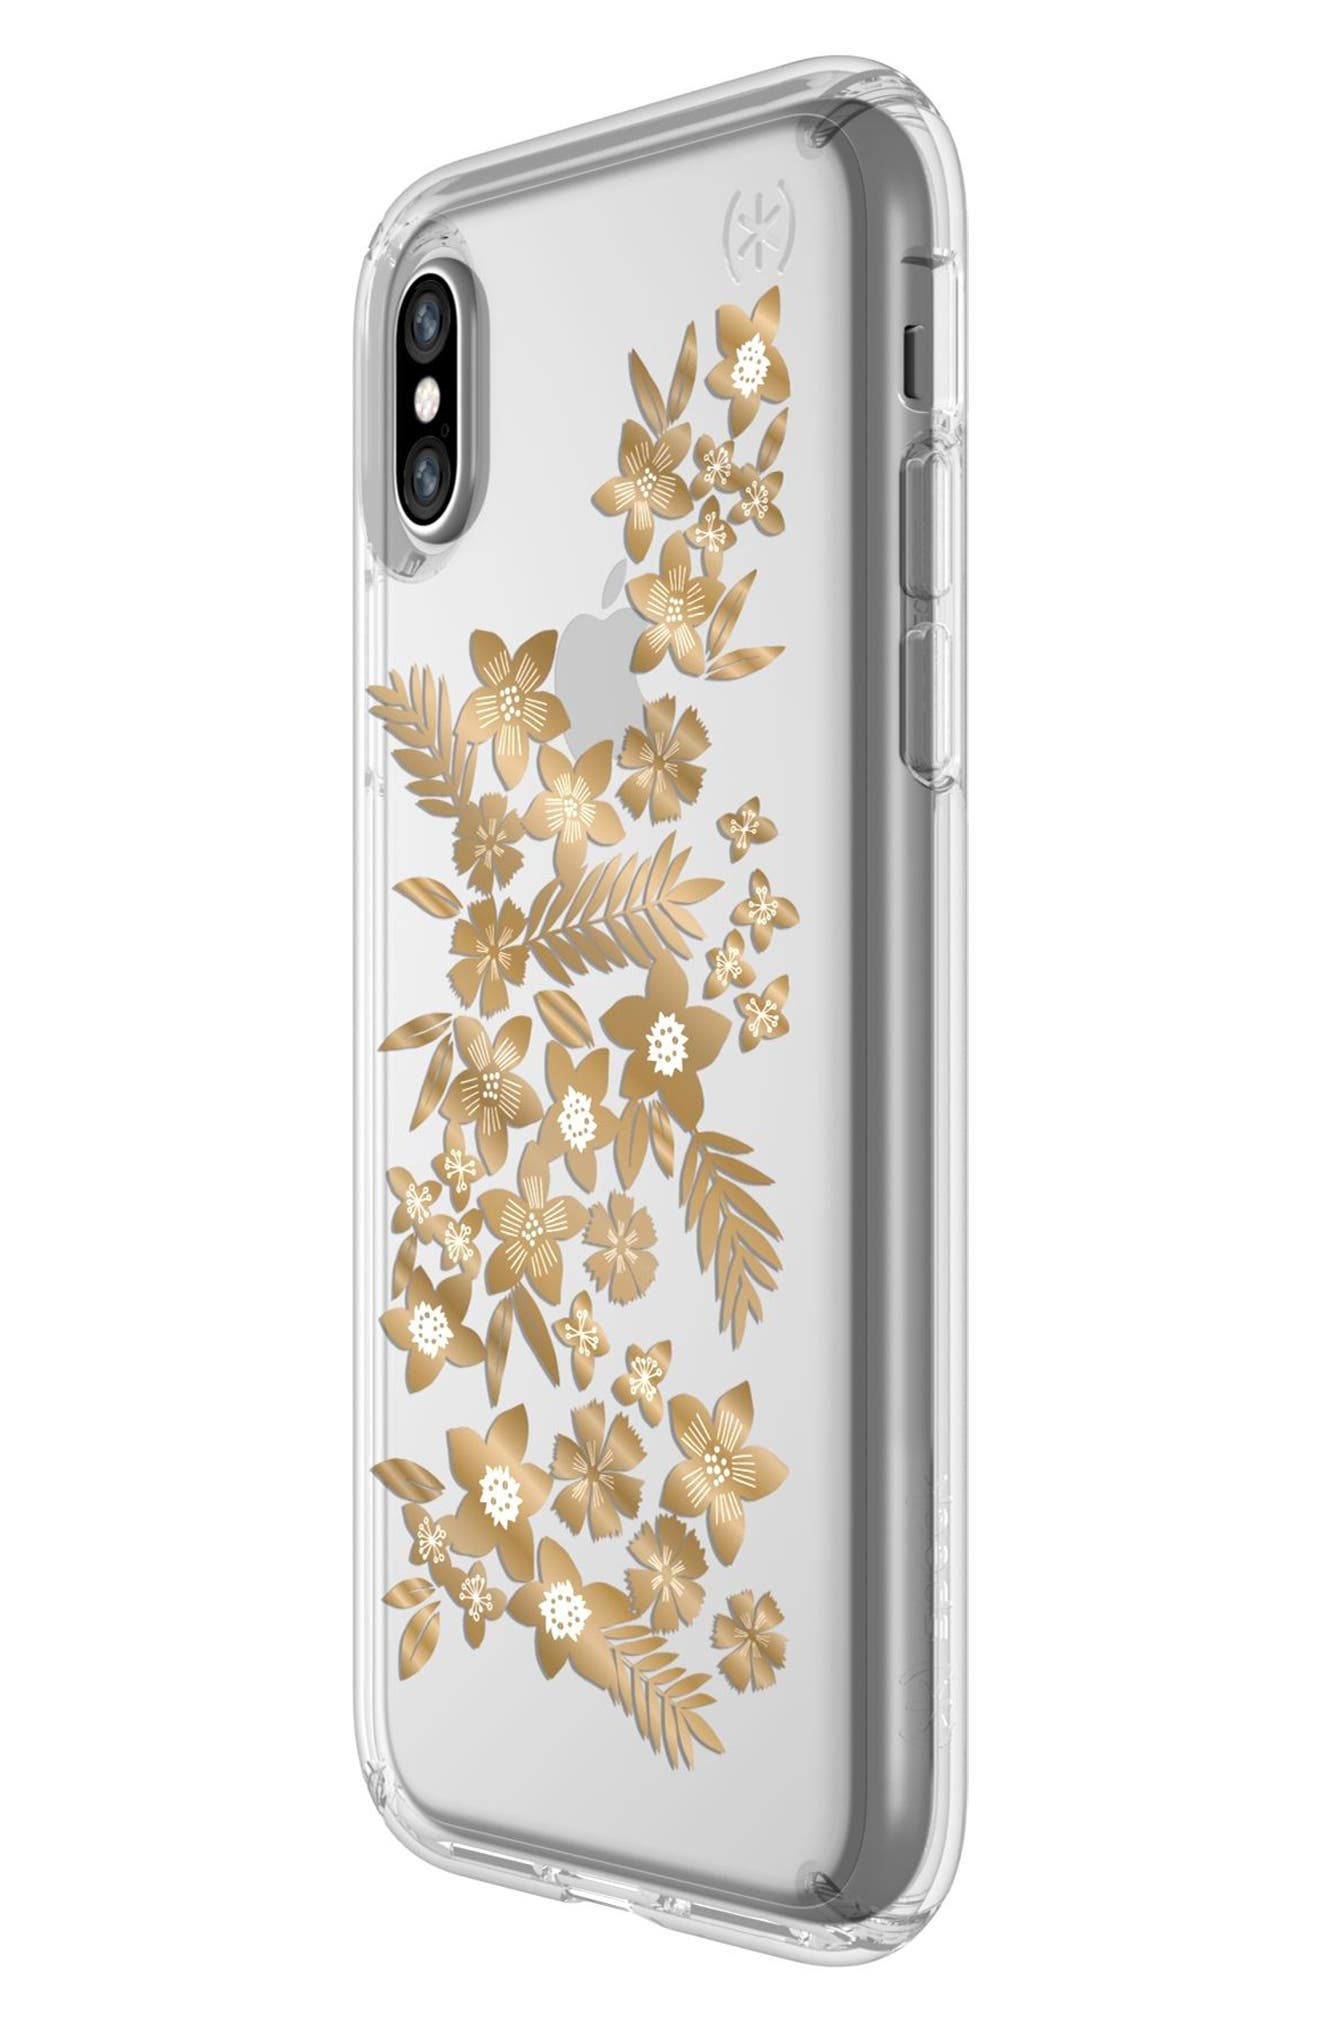 Shimmer Metallic Floral Transparent iPhone X Case,                             Alternate thumbnail 3, color,                             Shimmer Floral Metallic/ Clear